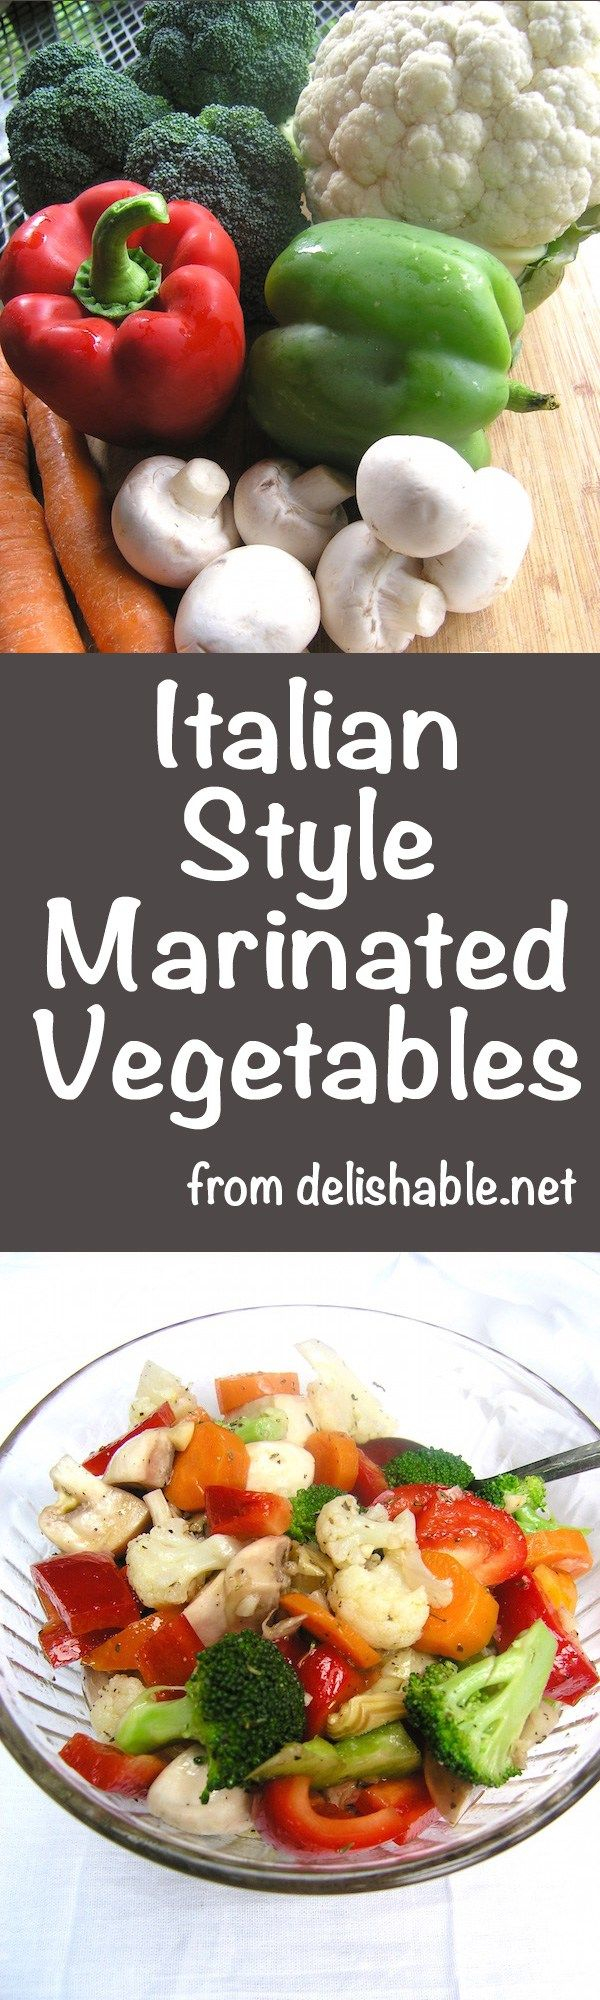 Italian Style Marinated Vegetables are colorful, zesty and easy to make. This recipe works well as either an appetizer, a side dish, or in a salad! Yum!   delishable.net